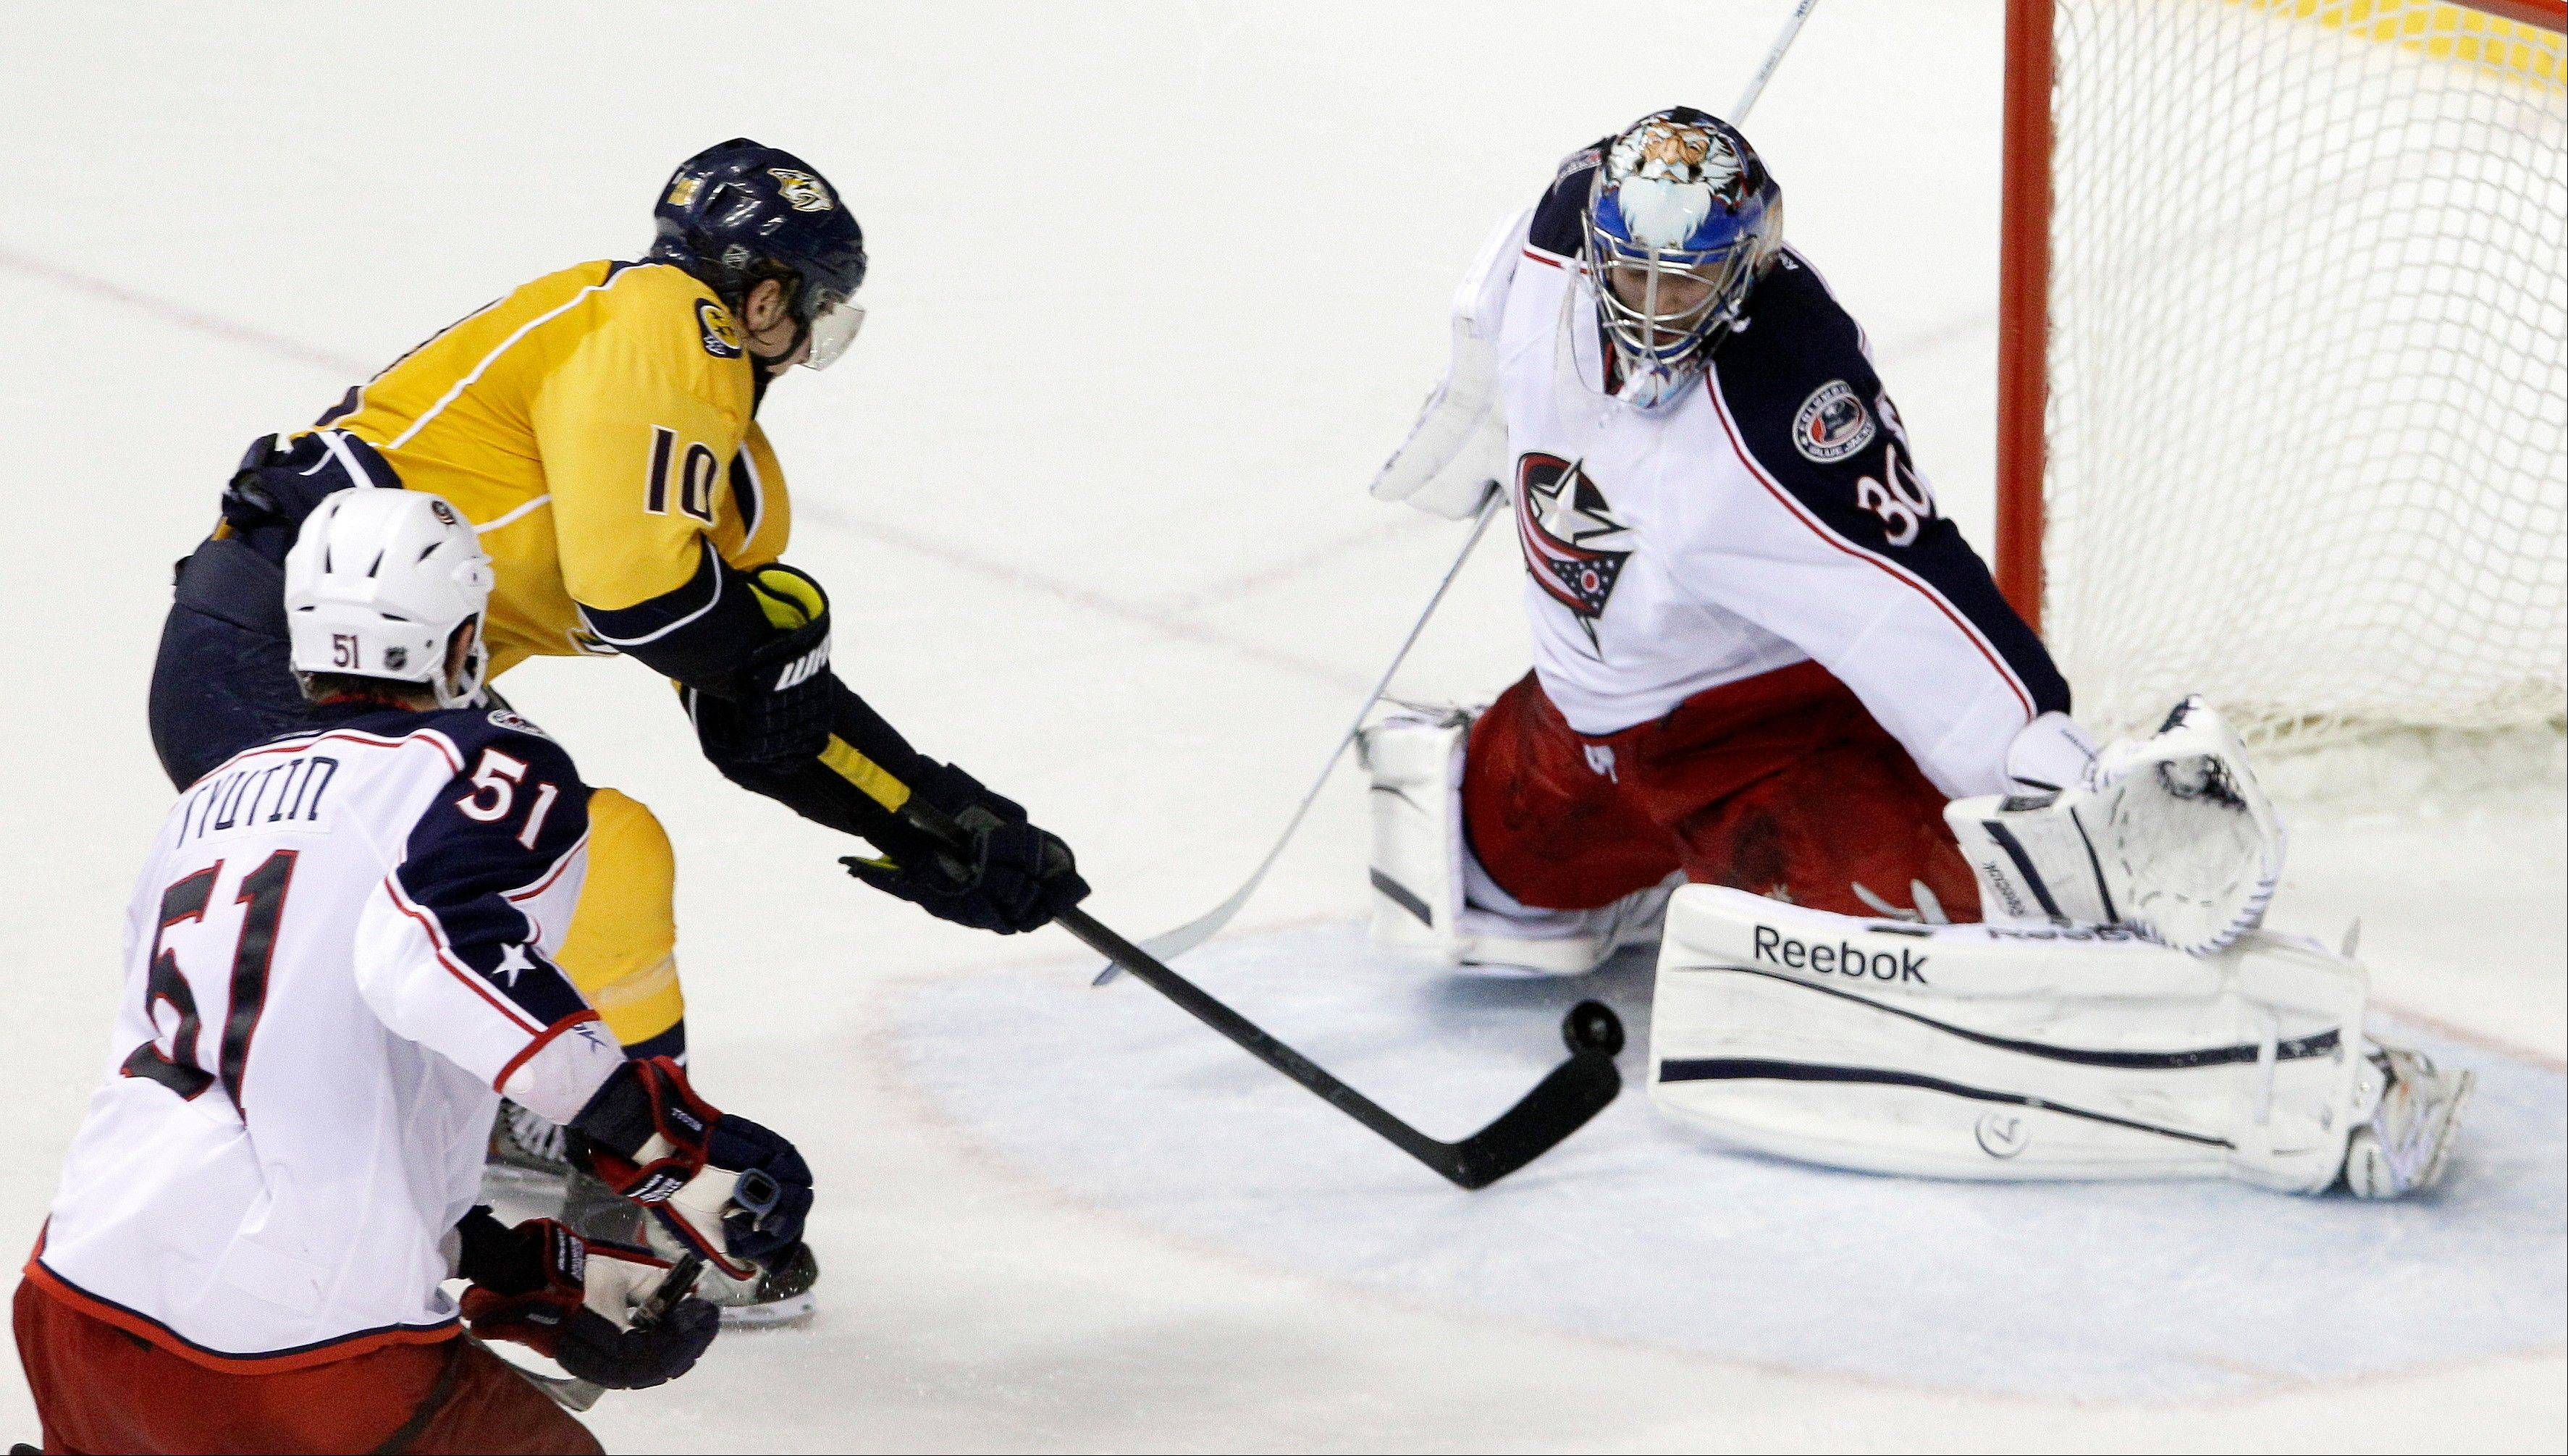 Nashville Predators left wing Martin Erat scores the game-winning goal against Columbus Blue Jackets goalie Curtis Sanford with 8.4 seconds left Thursday in Nashville.